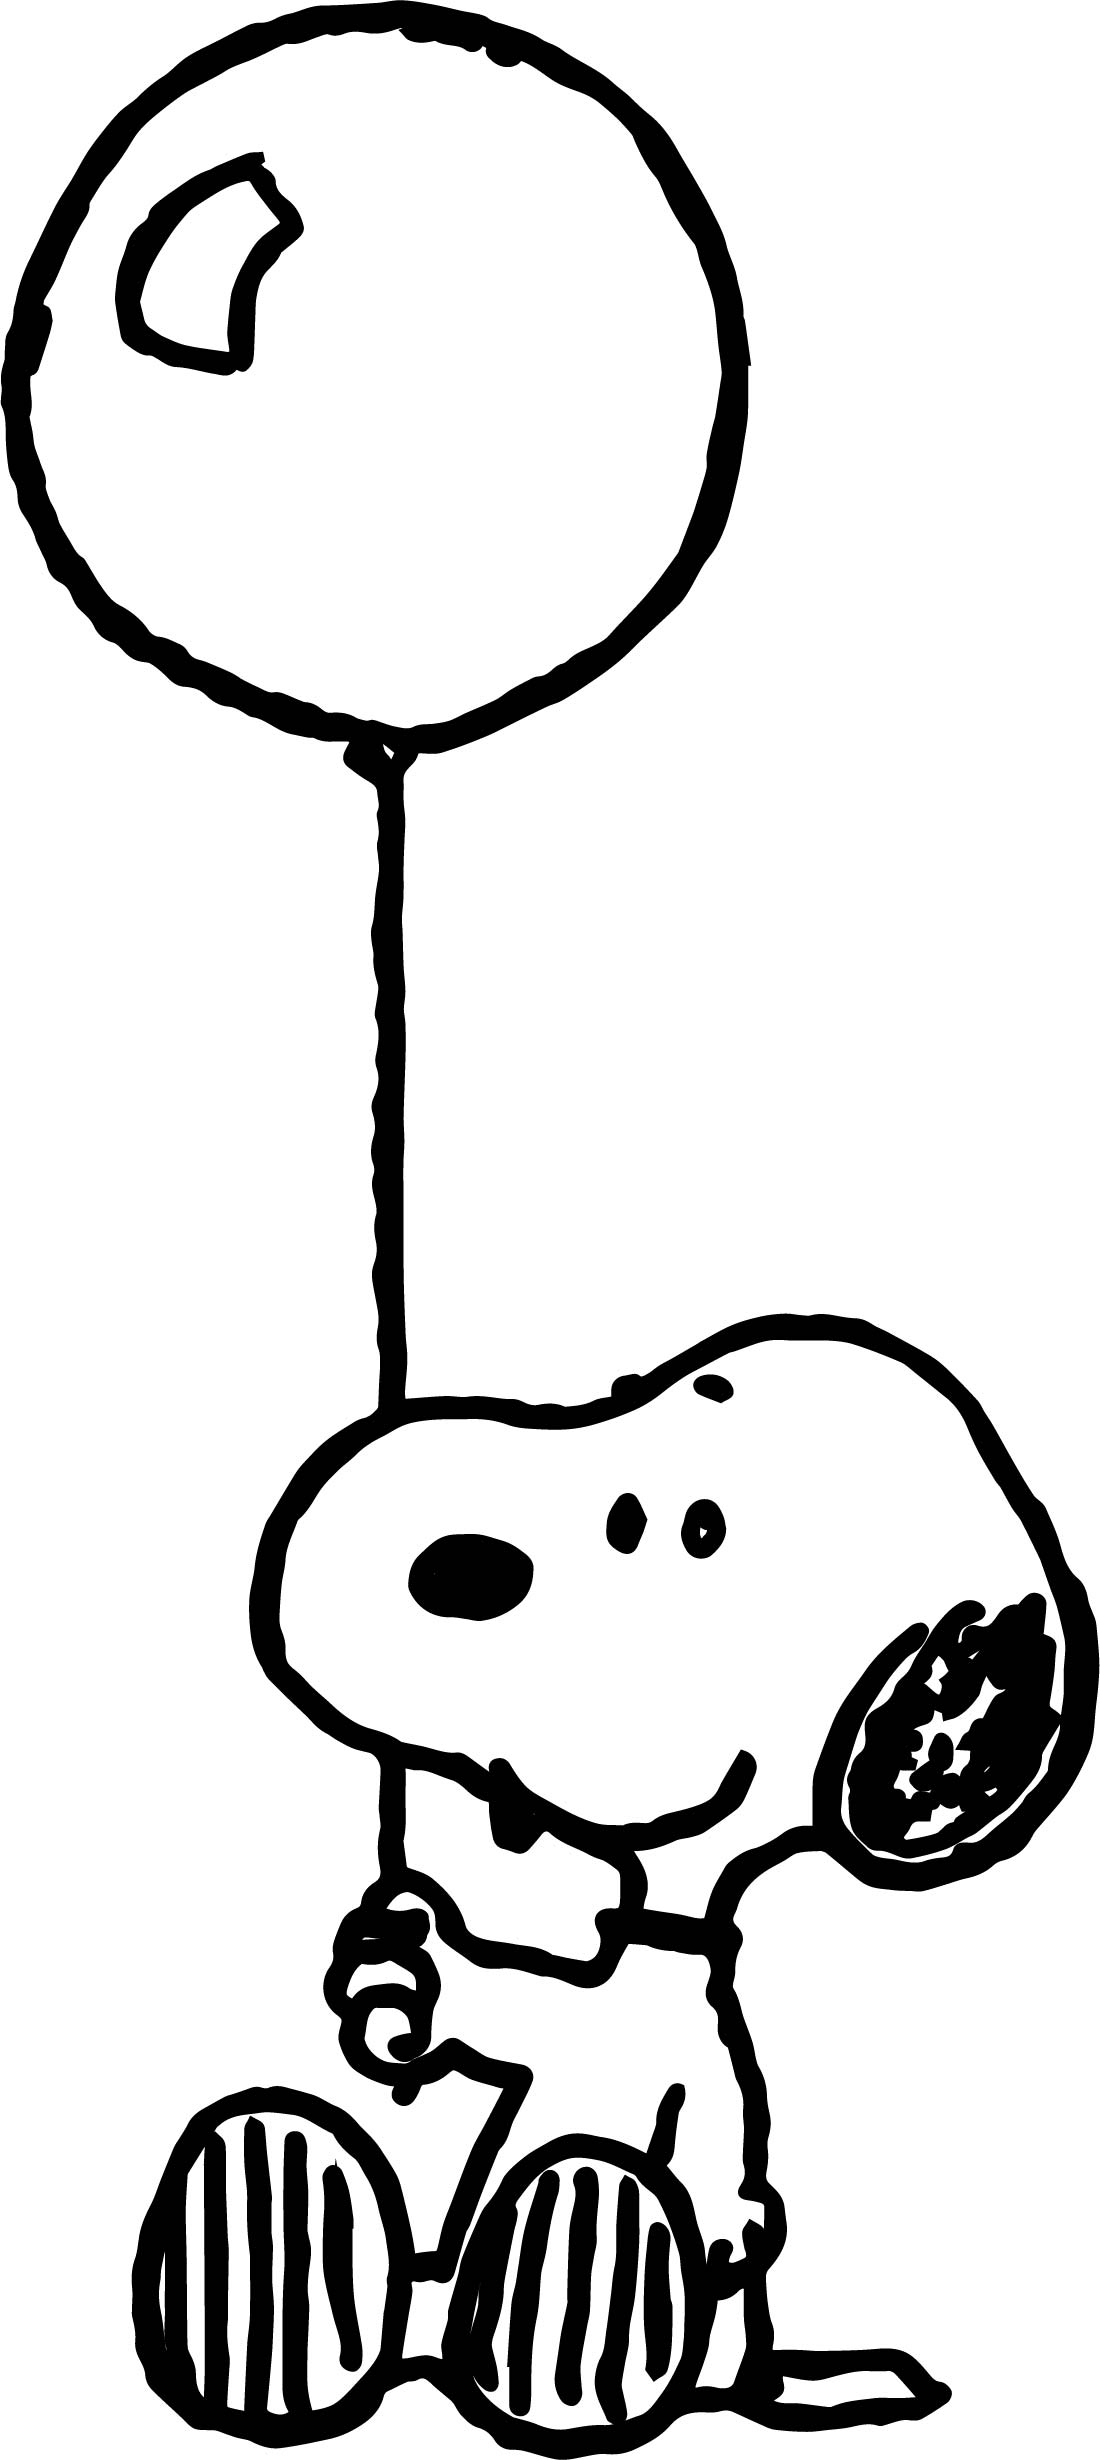 Snoopy Kon Colors Balloon Coloring Page Wecoloringpage